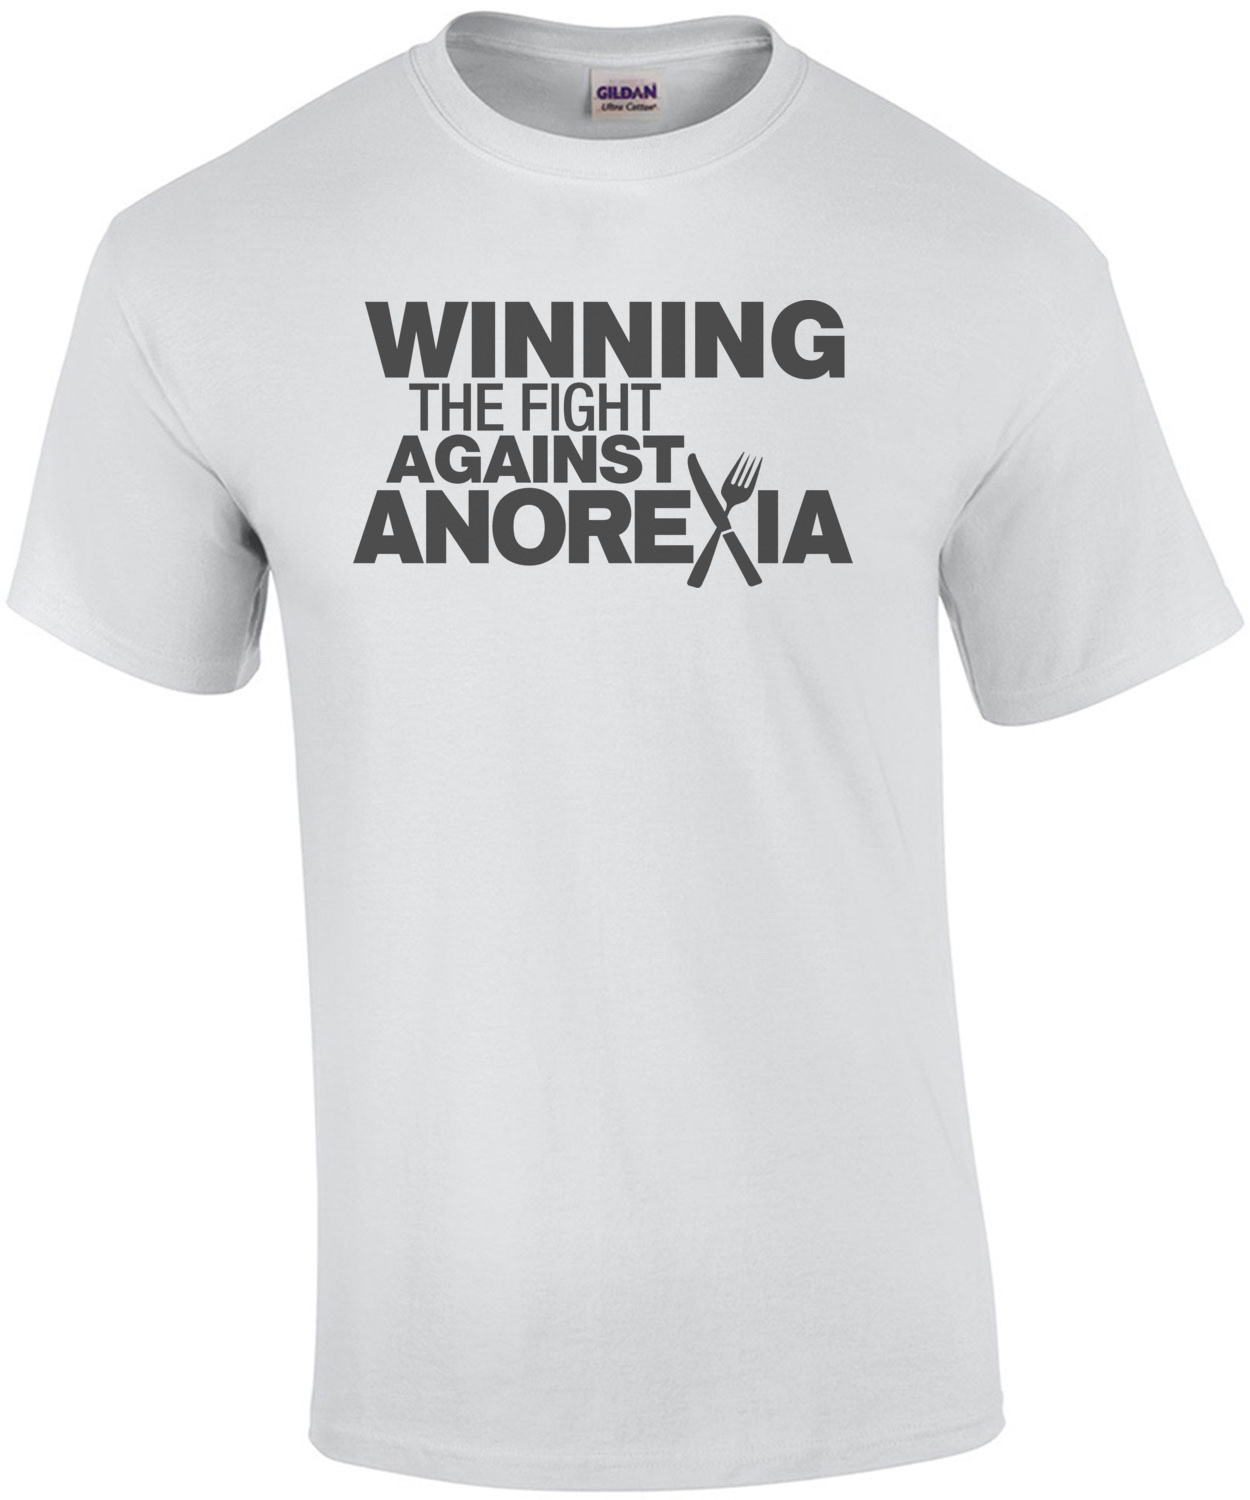 Winning The Fight Against Anorexia